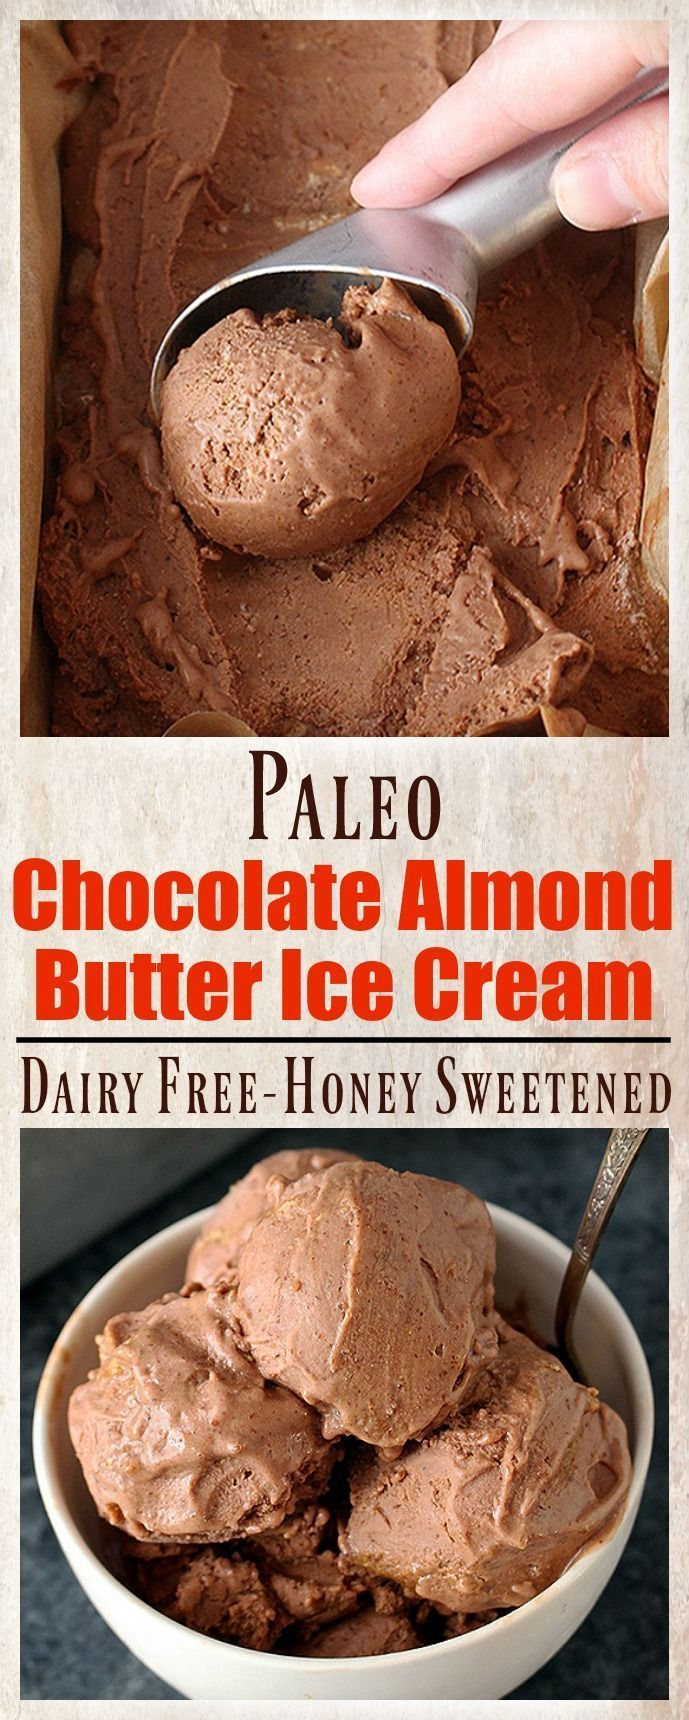 Paleo Chocolate Almond Butter Ice Cream